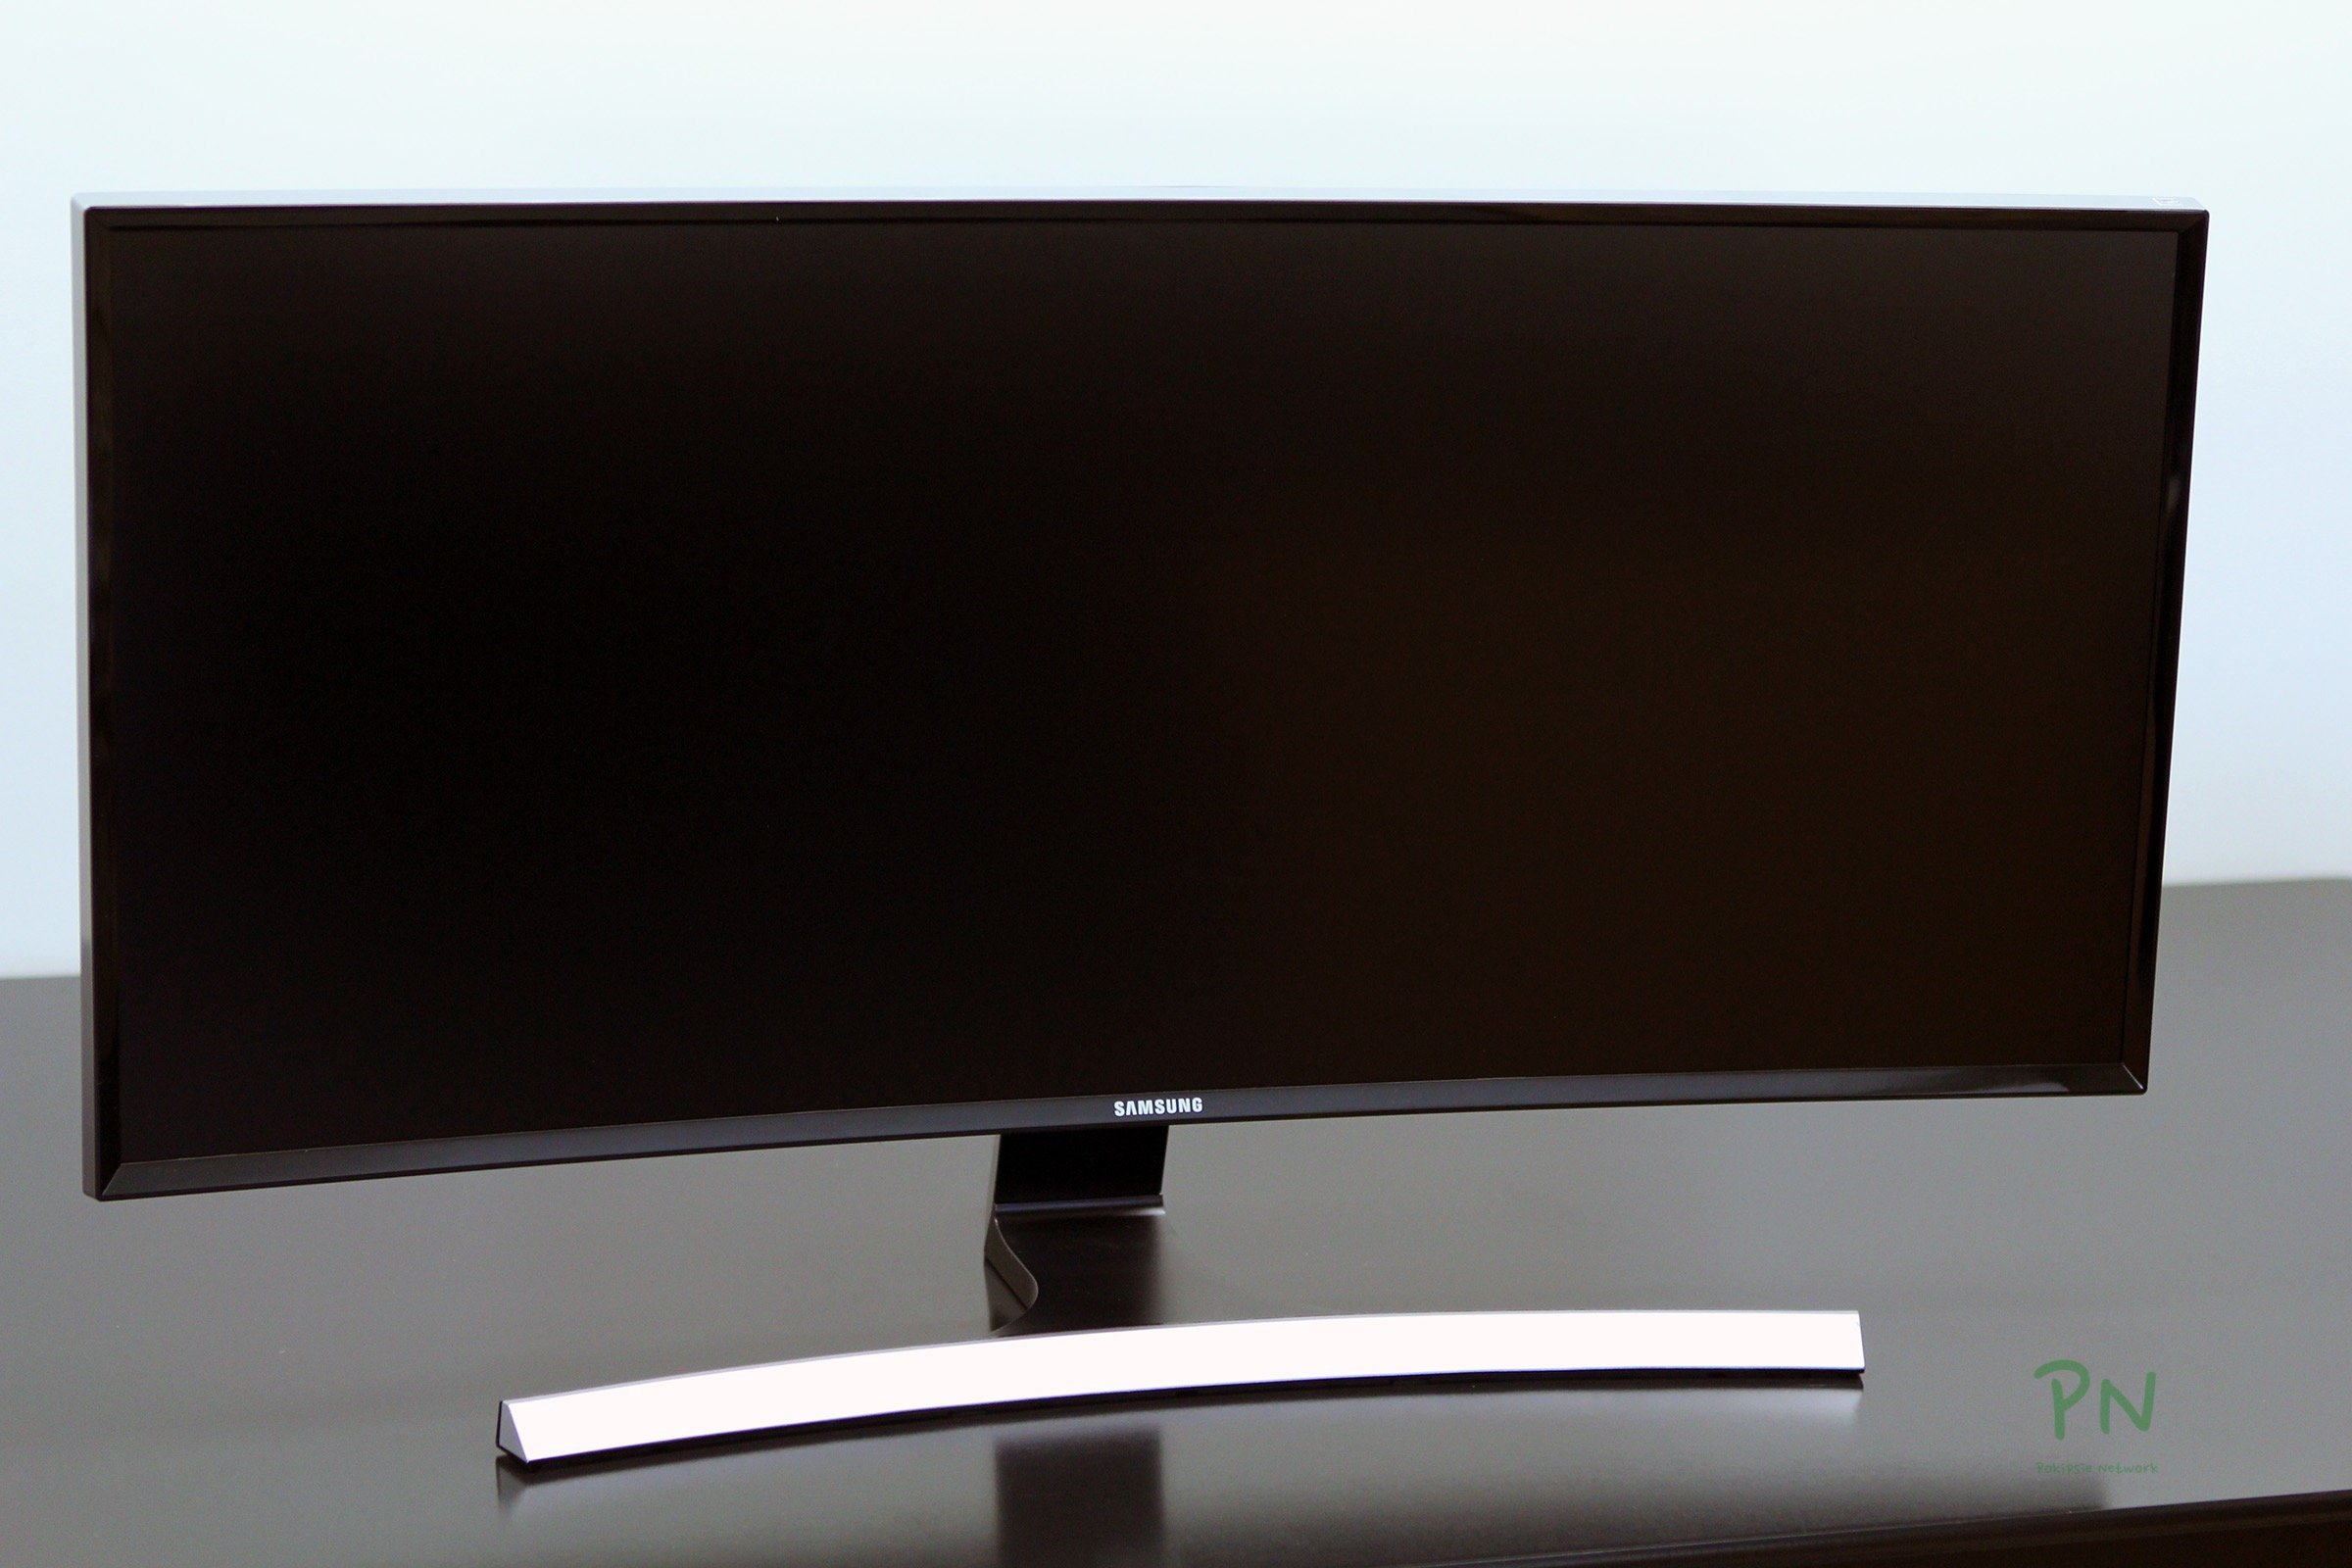 Samsung 34″ Curved Display SE790C